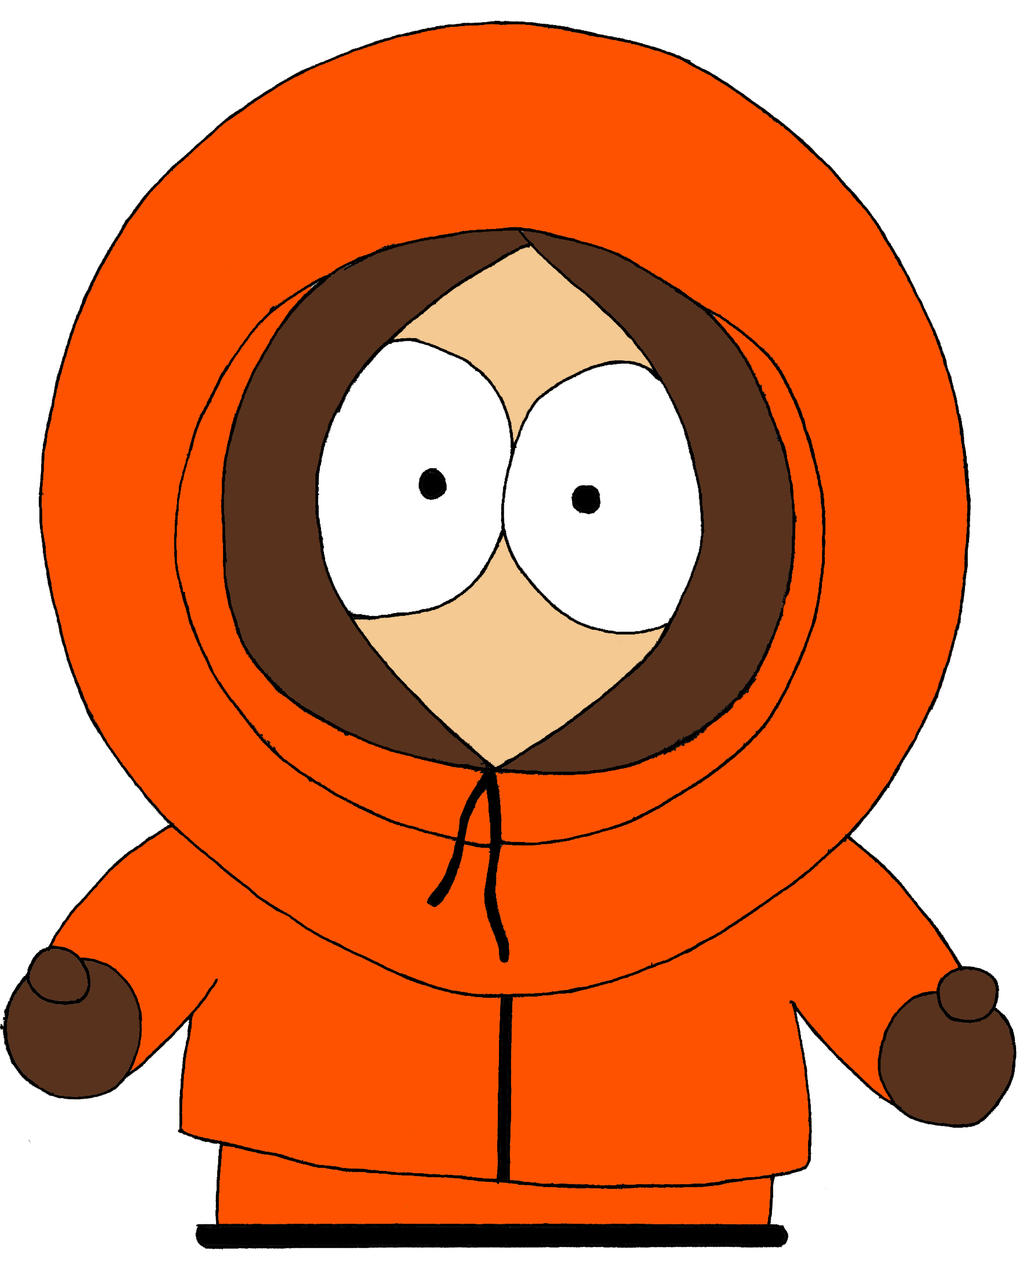 South park action poses kenny 18 by megasupermoon on deviantart - Pics of kenny from south park ...